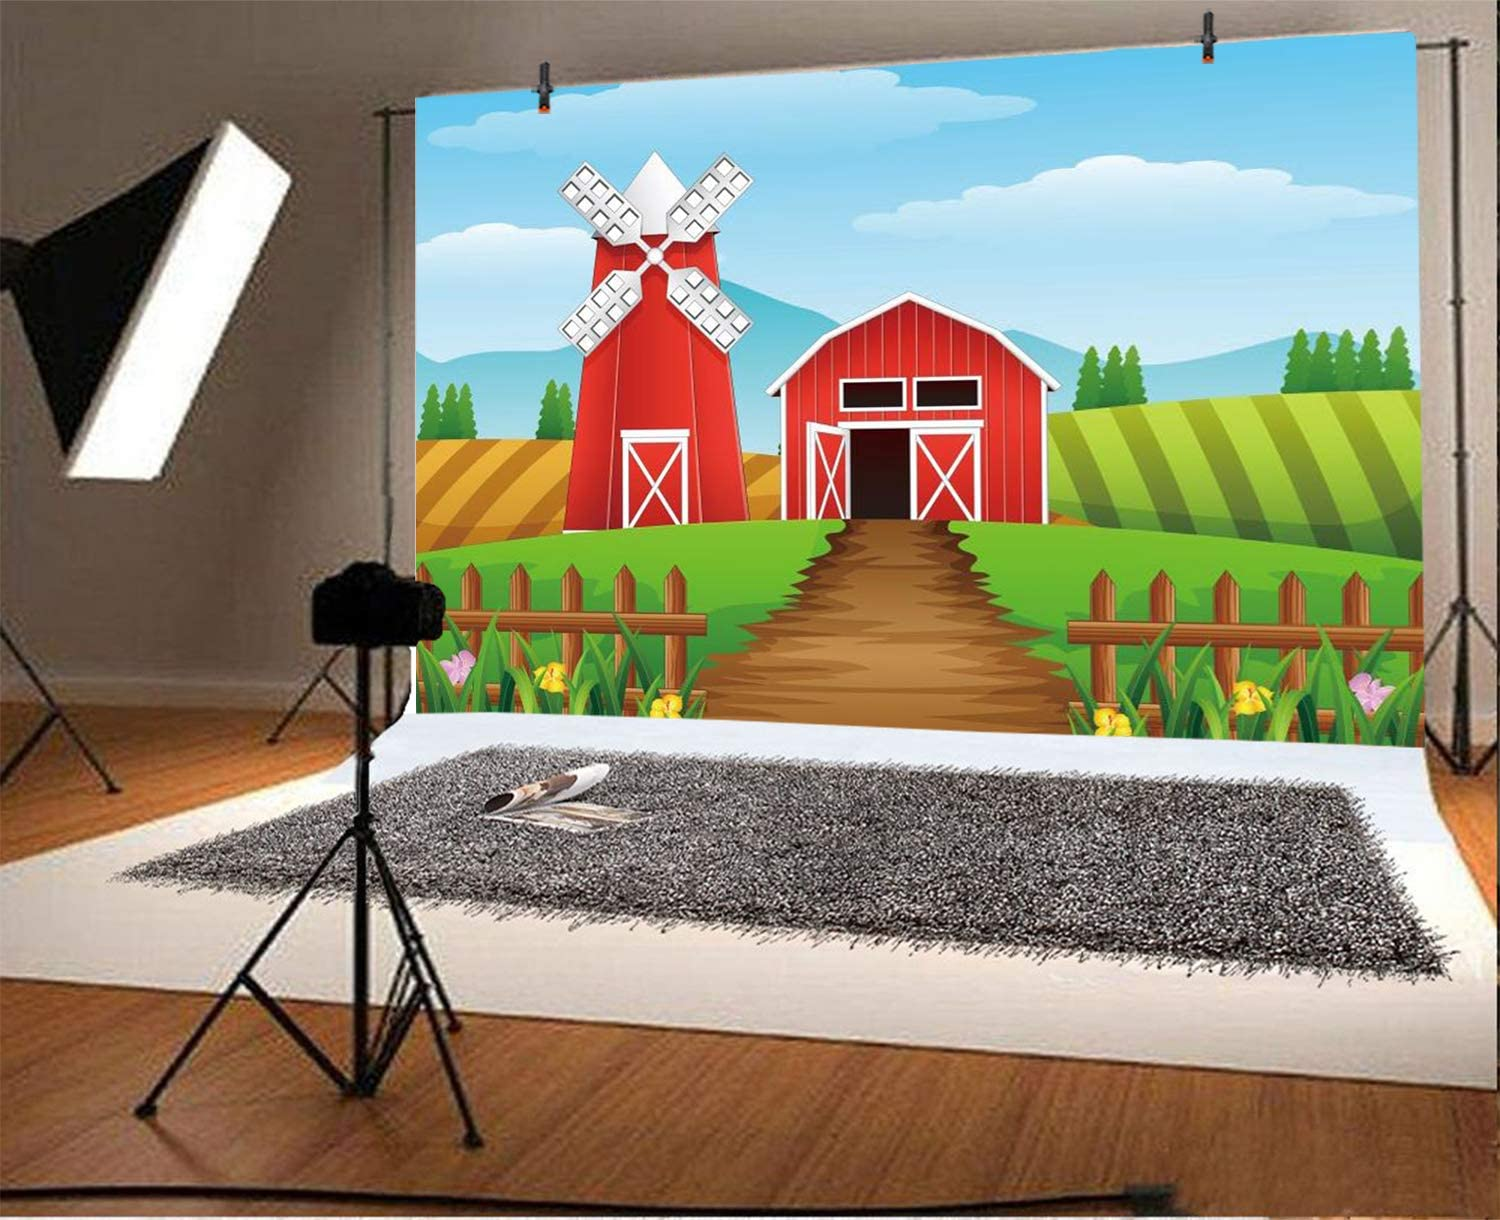 8x10 FT Photography Backdrop Landscape with Traditional Famous Dutch Windmills on Near Canal Photo Background for Kid Baby Boy Girl Artistic Portrait Photo Shoot Studio Props Video Drape Vinyl